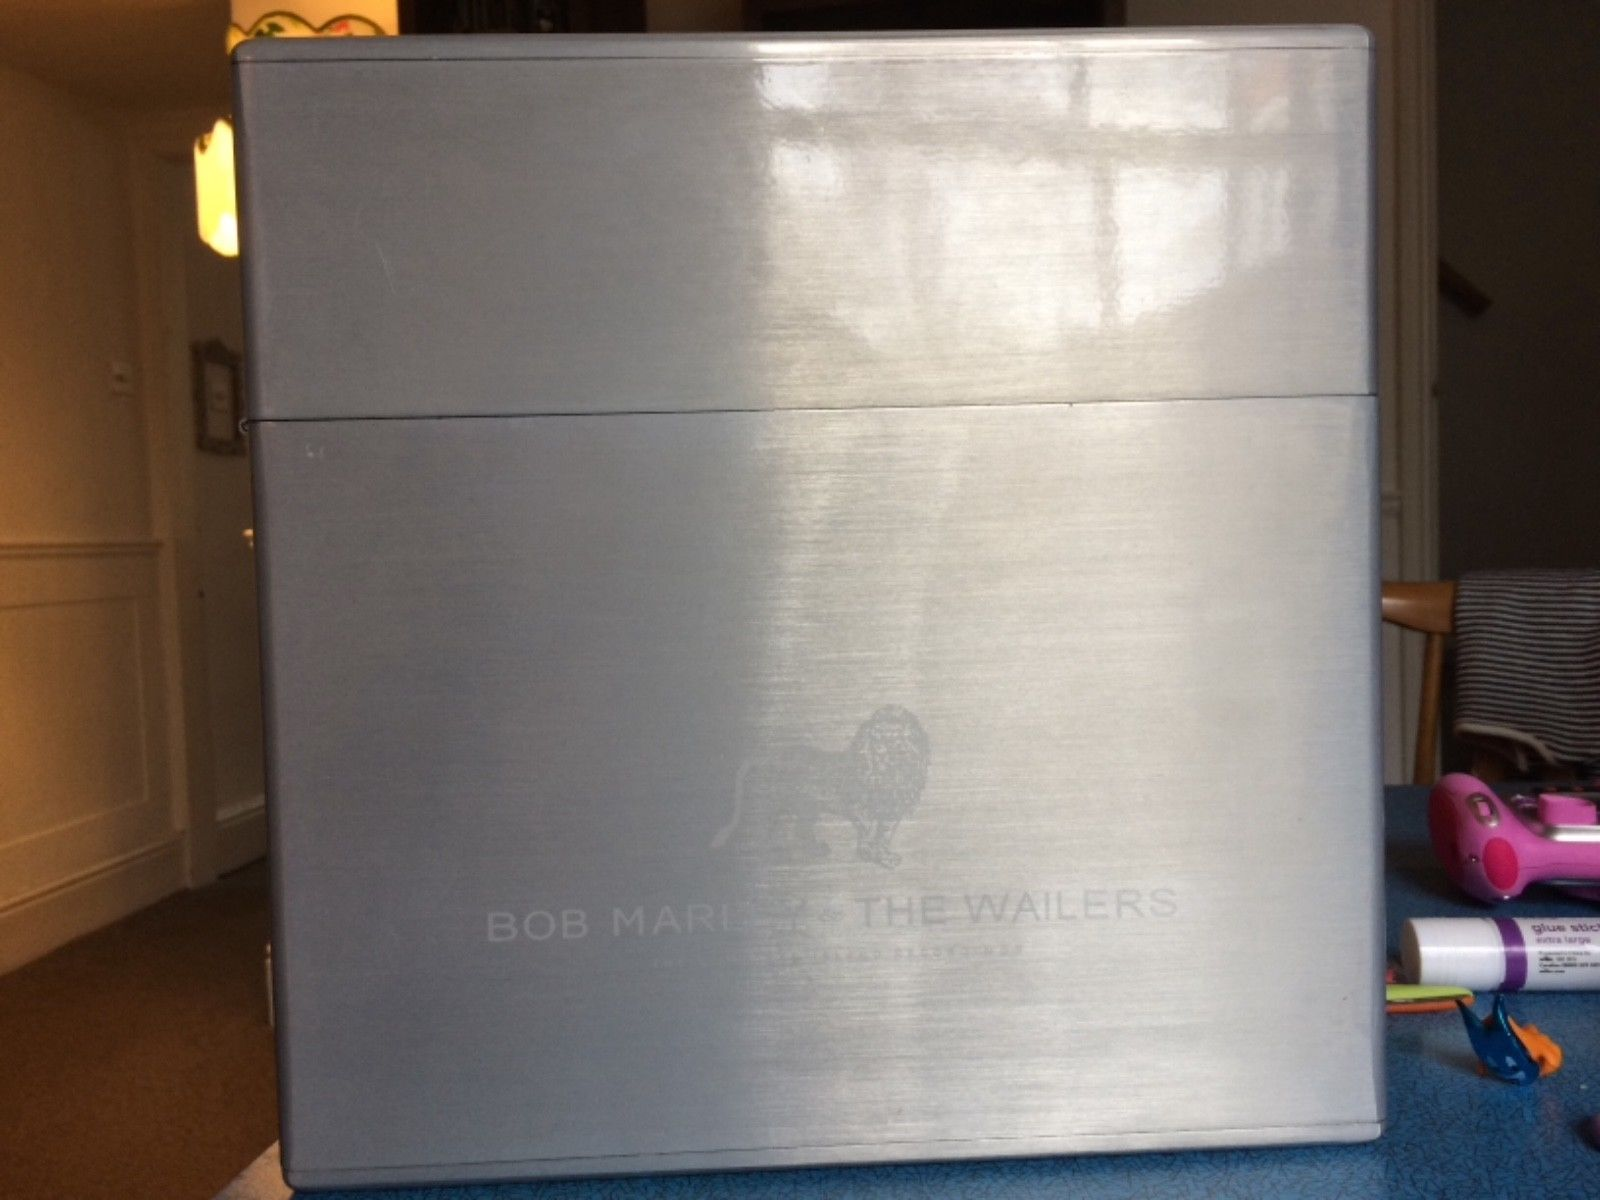 Bob Marley and the Wailers The Complete Island Recordings Zippo box set vinyl